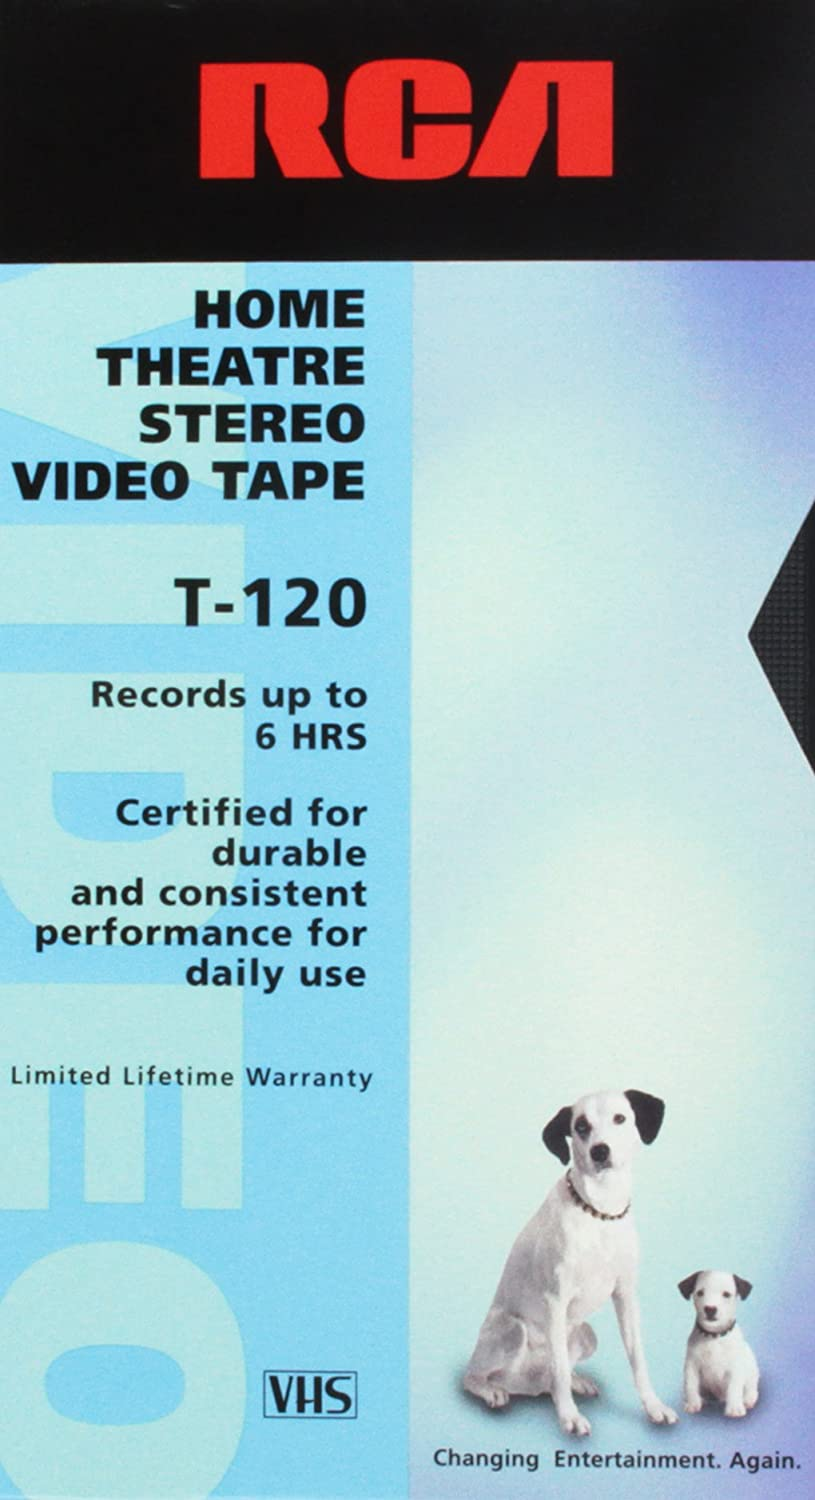 Amazon.com: RCA Home Theatre Stereo Video Tape T-120: Movies & TV